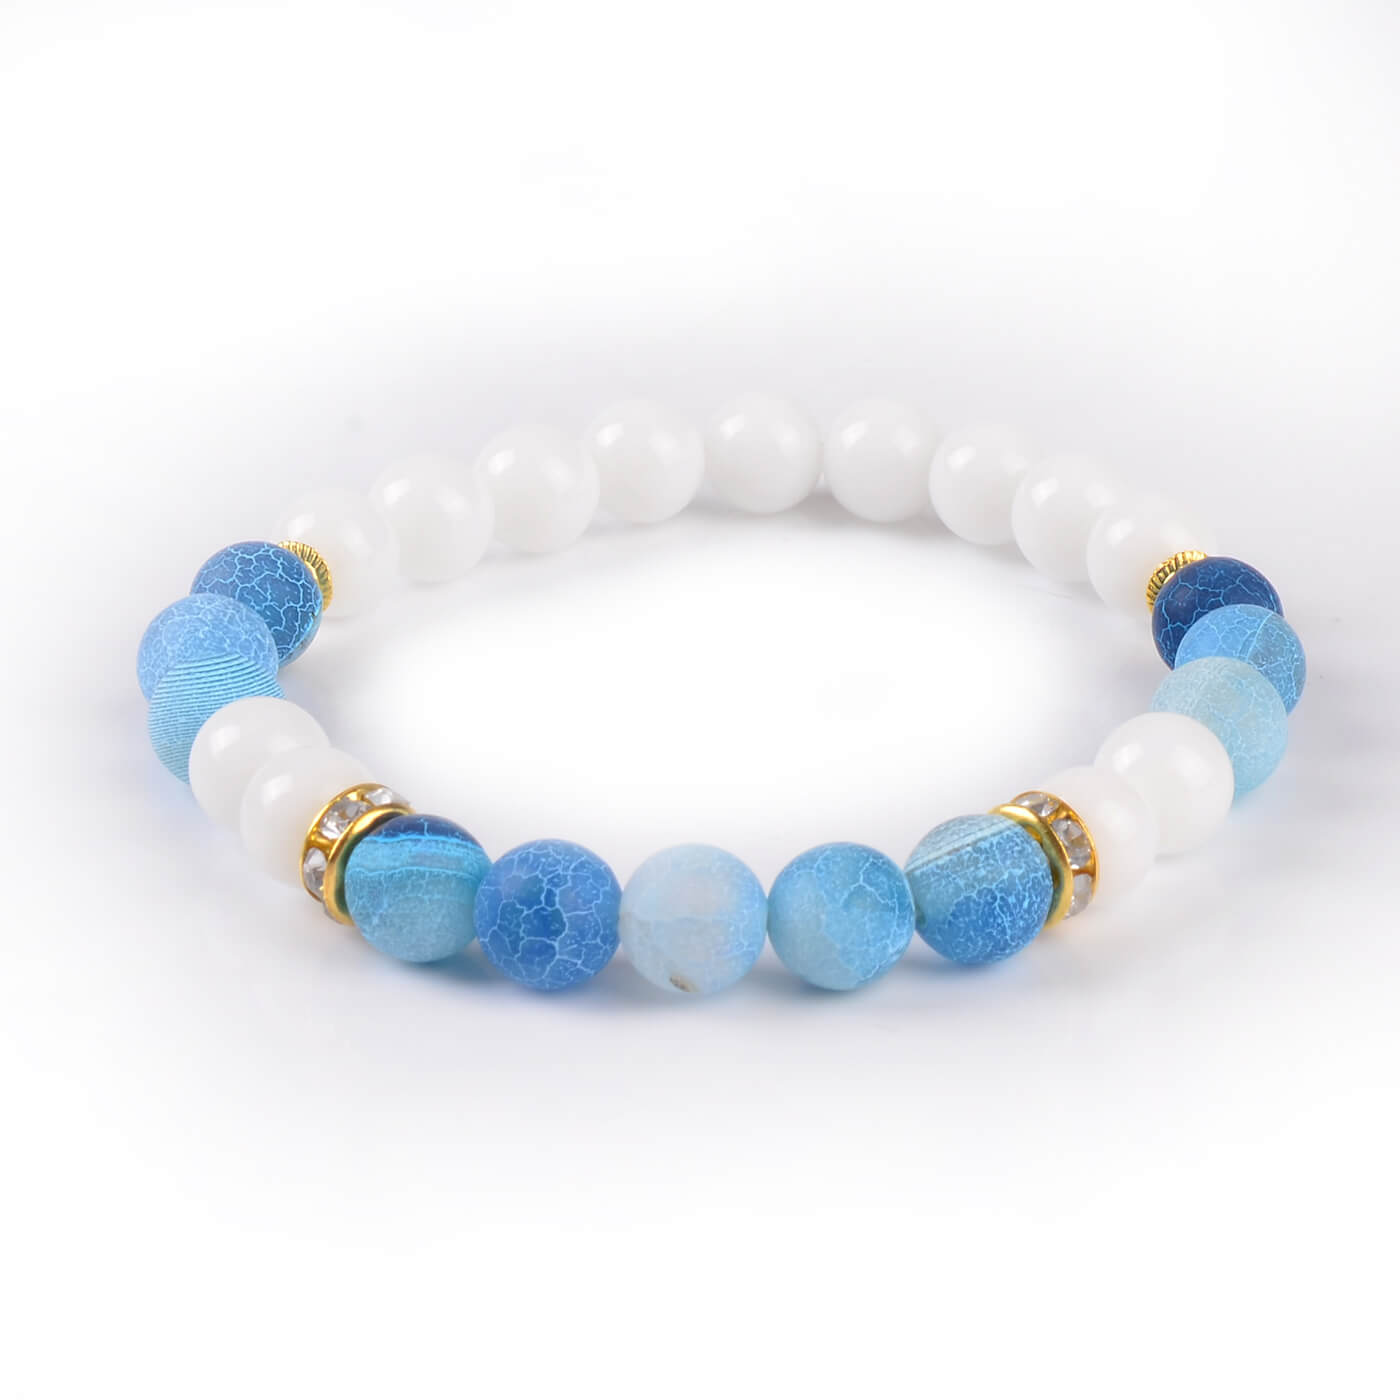 31dc352d97fc02 Summer Vibes Bracelet | White Jade & Blue Weathered Agate Stone Beads